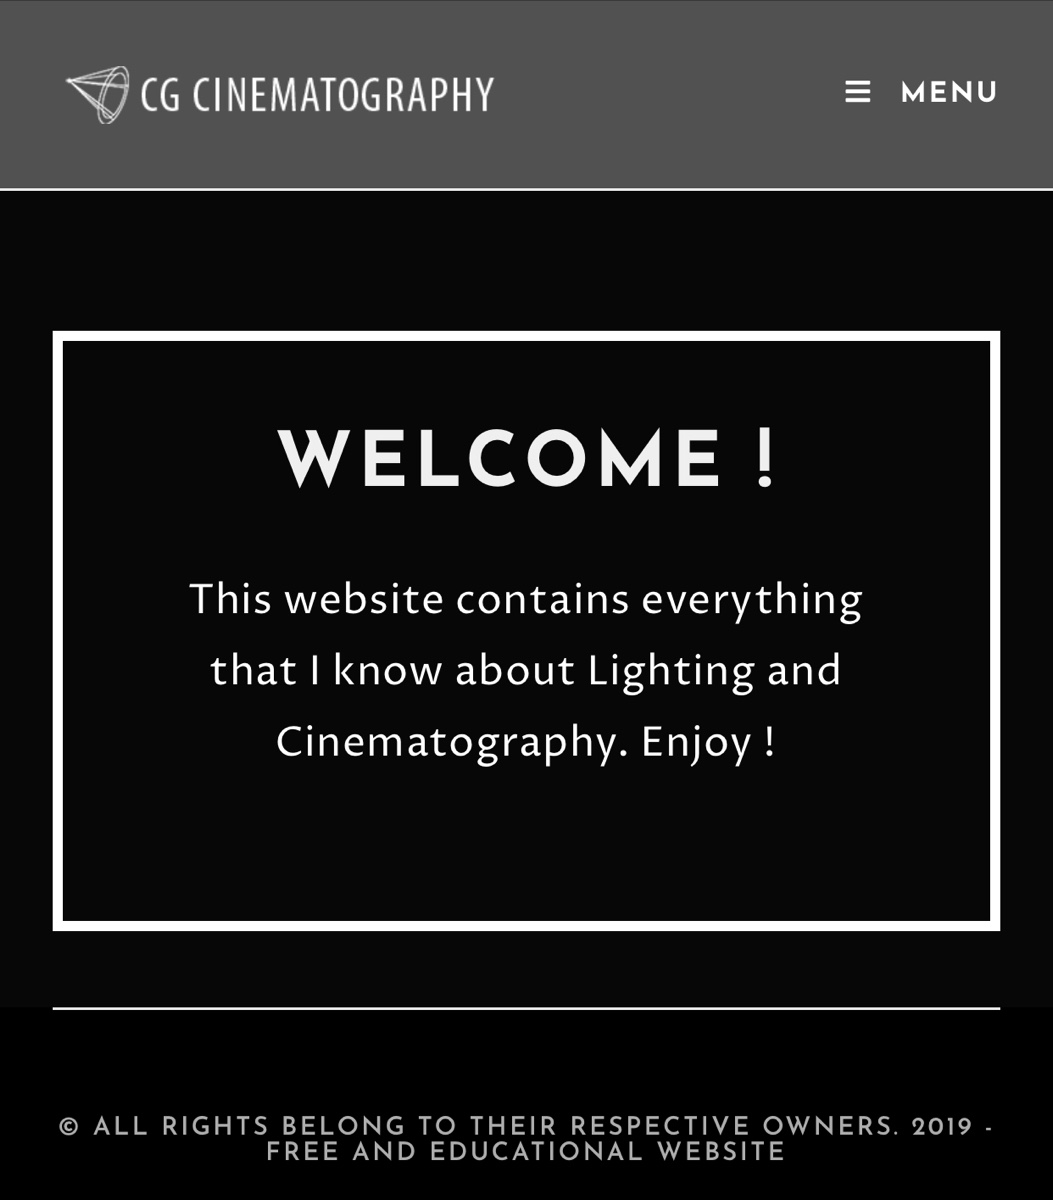 CG Cinematography Free EBook online